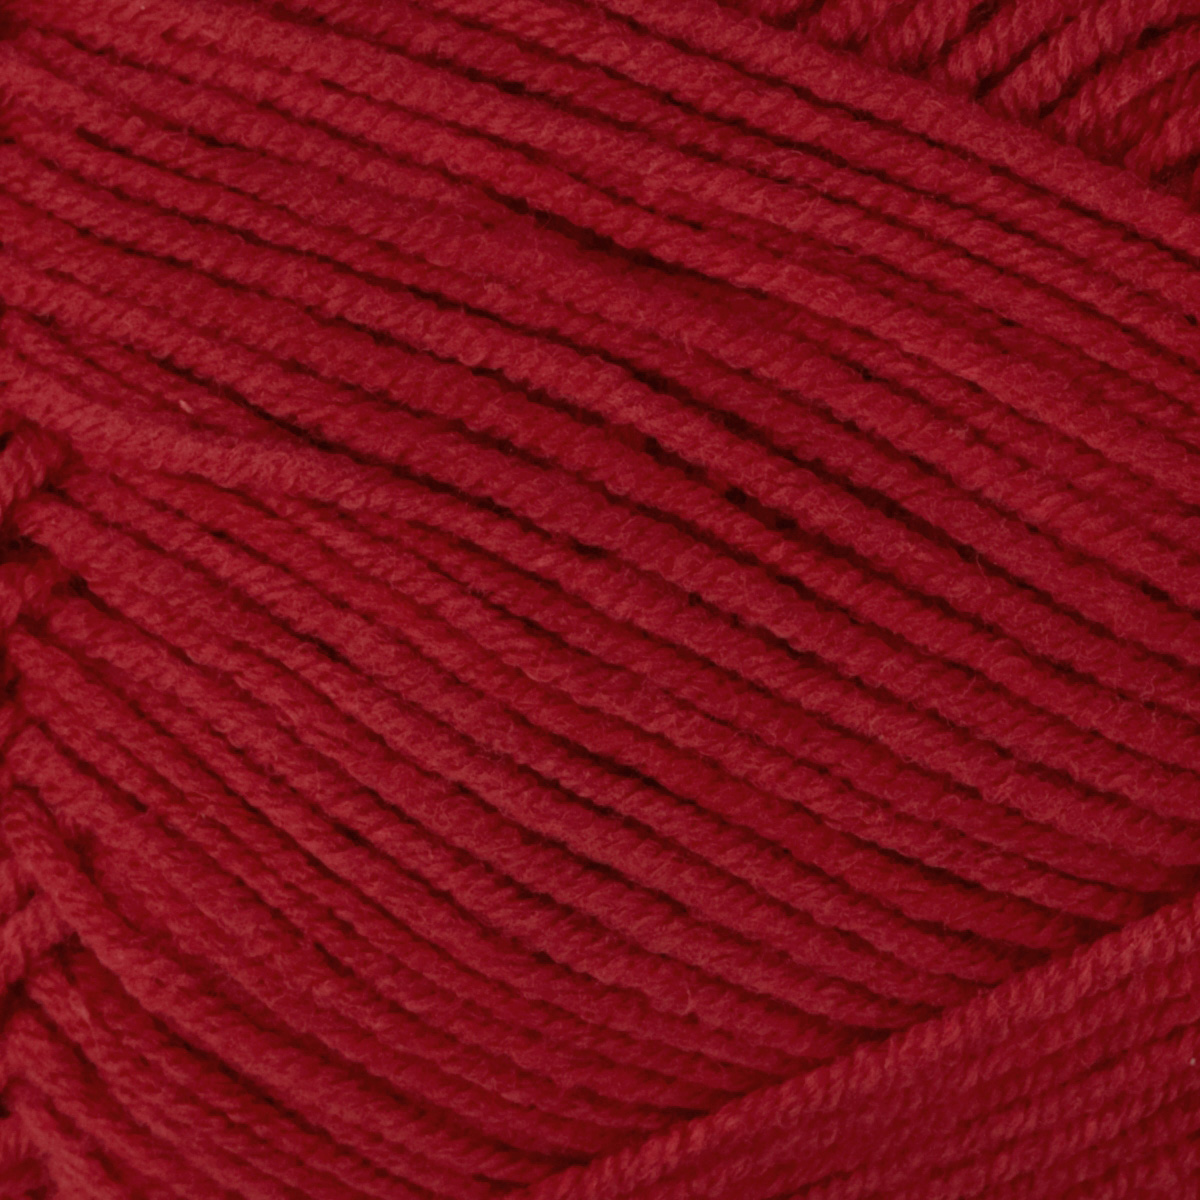 Bernat Cotton-ish by Vickie Howell Yarn (85434) Crimson